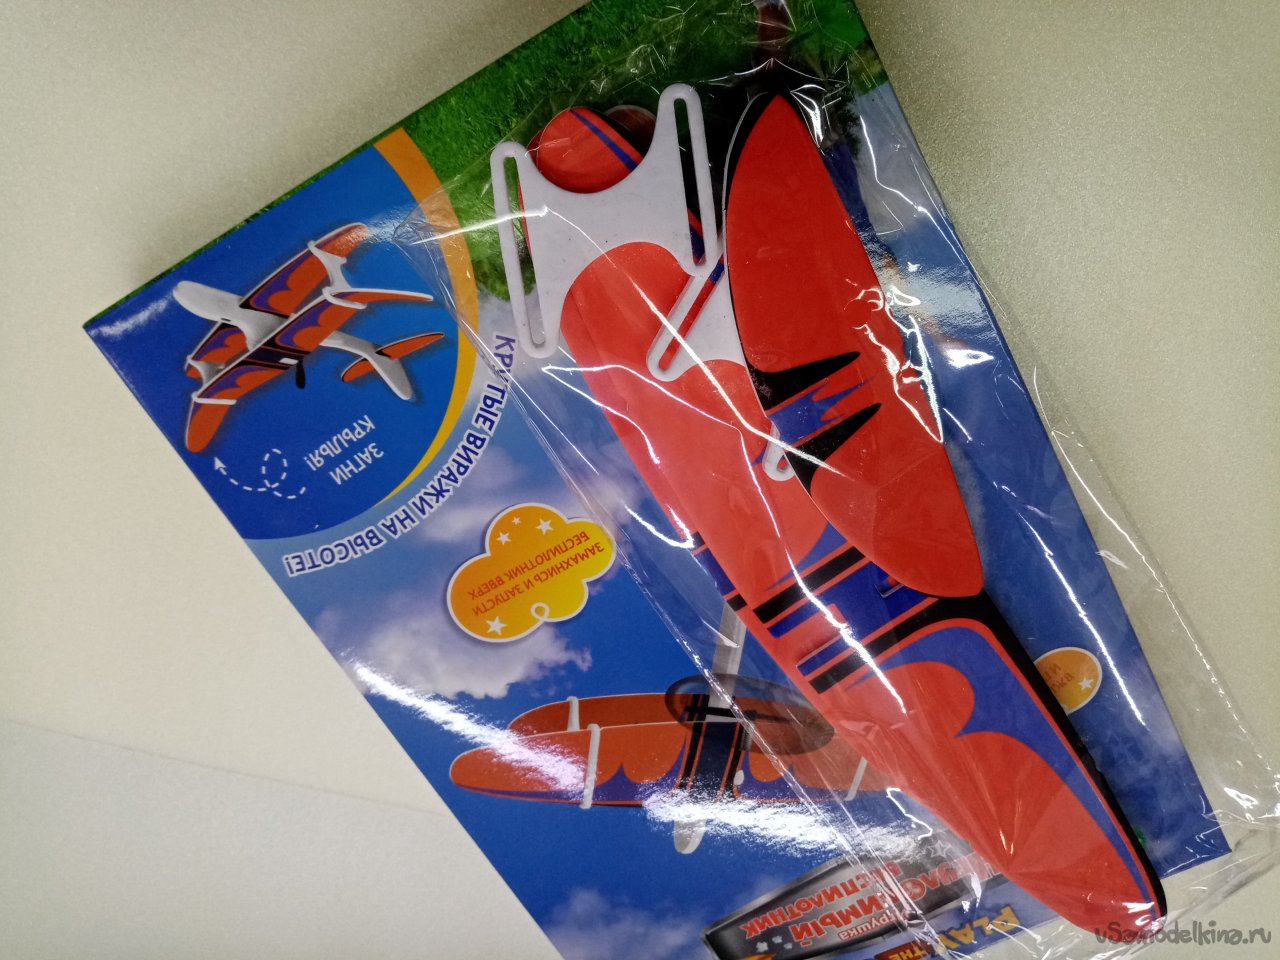 New Year's gift for yourself, a children's airplane